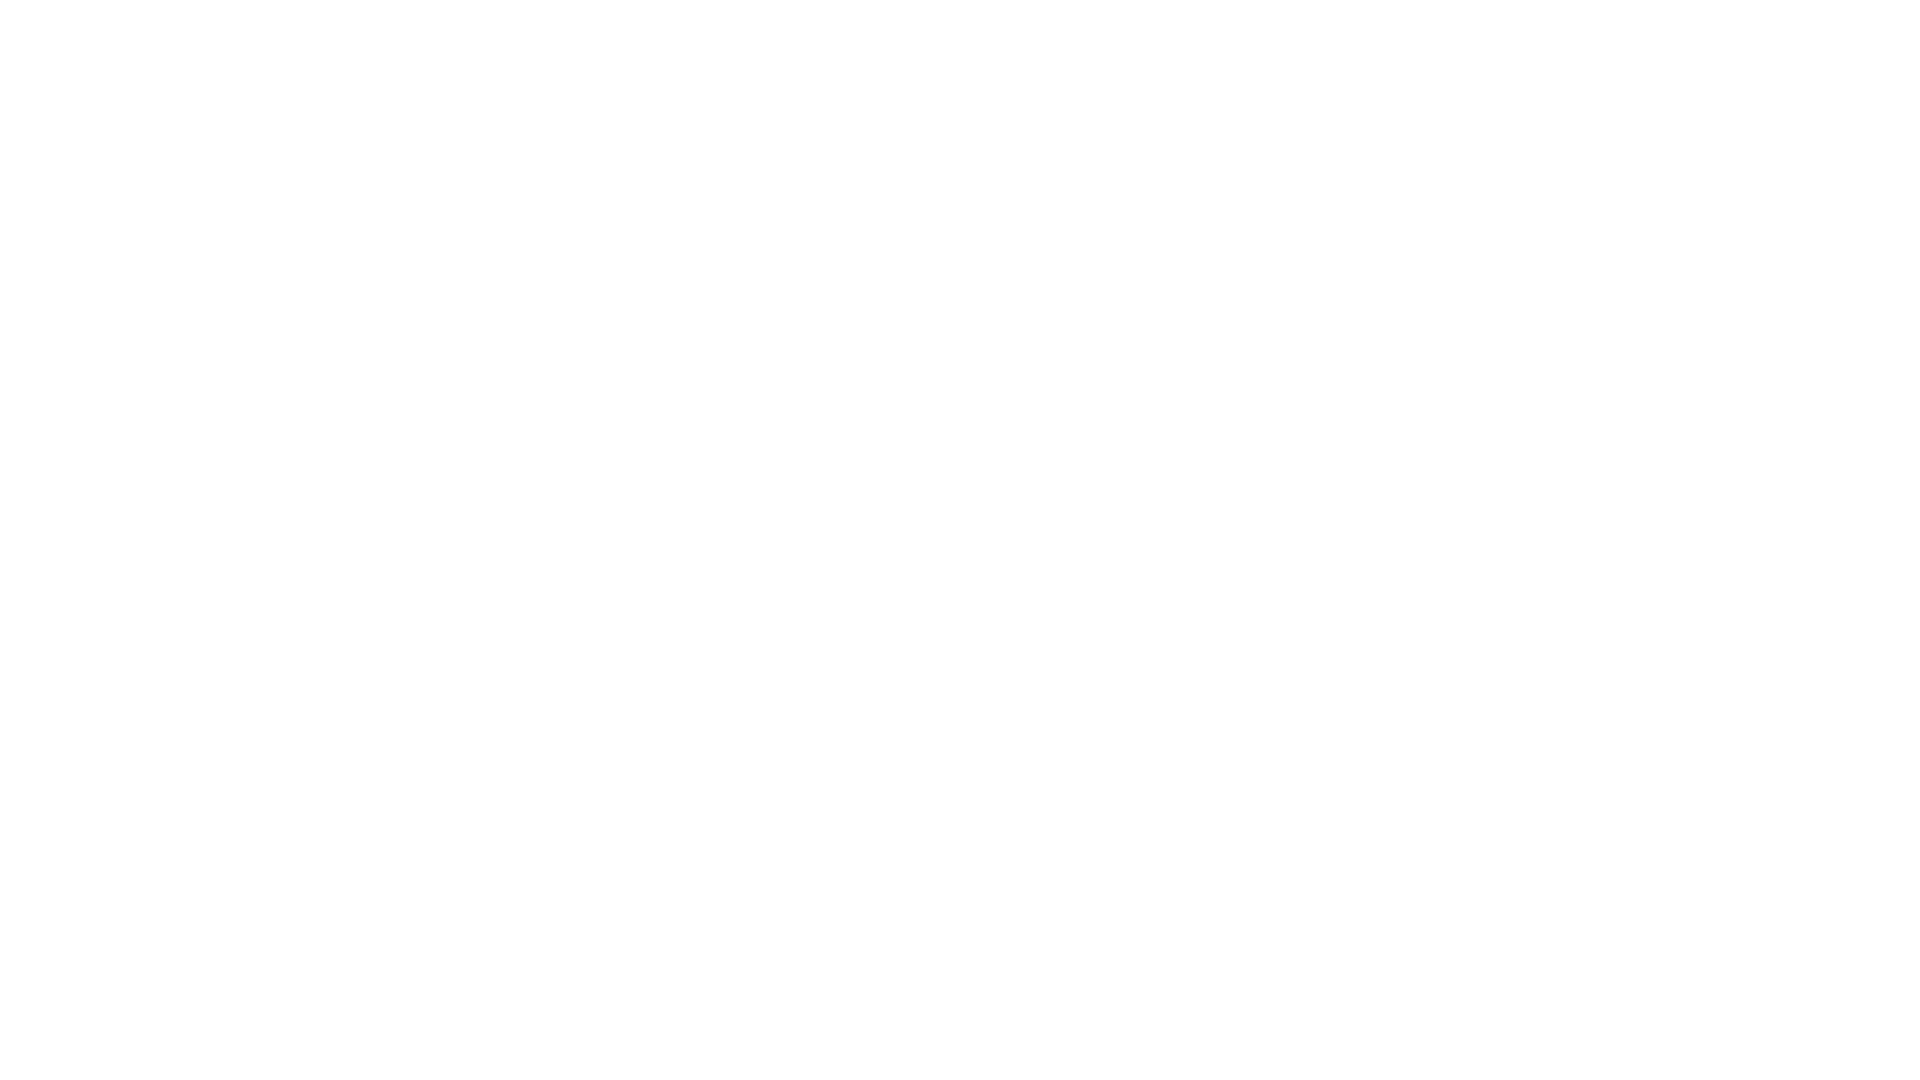 APPLICATION OPEN